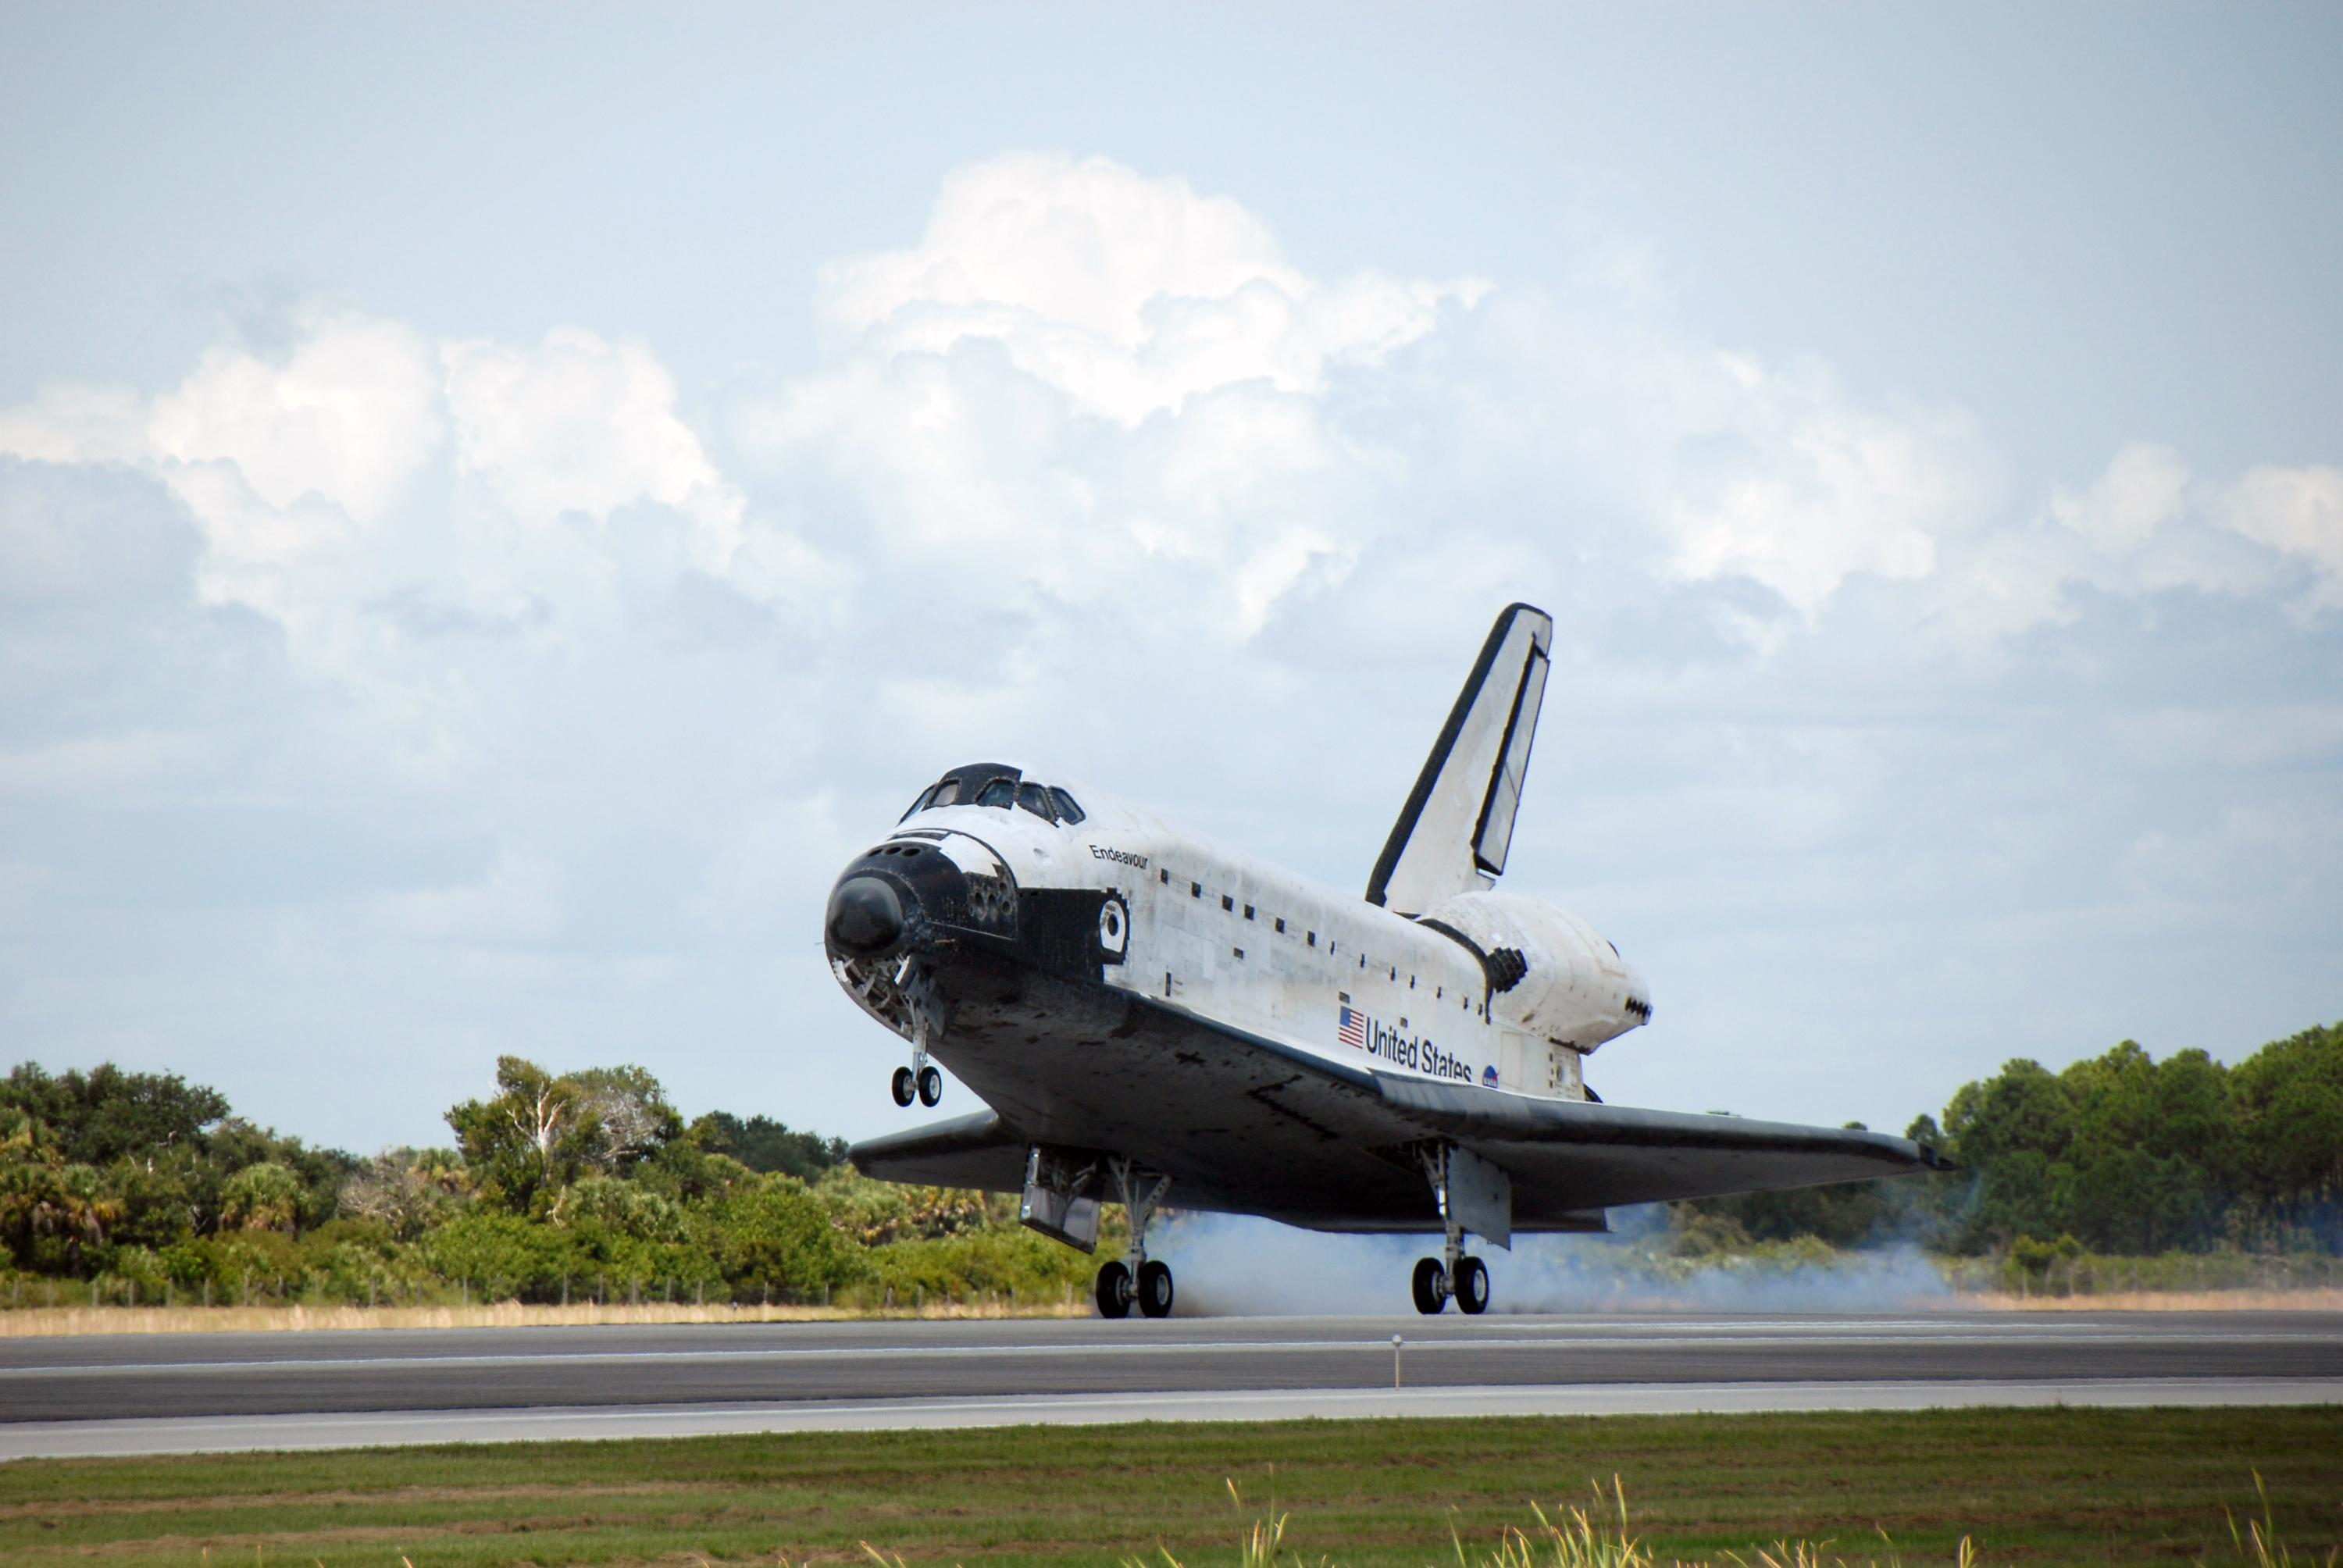 space shuttle after landing - photo #37